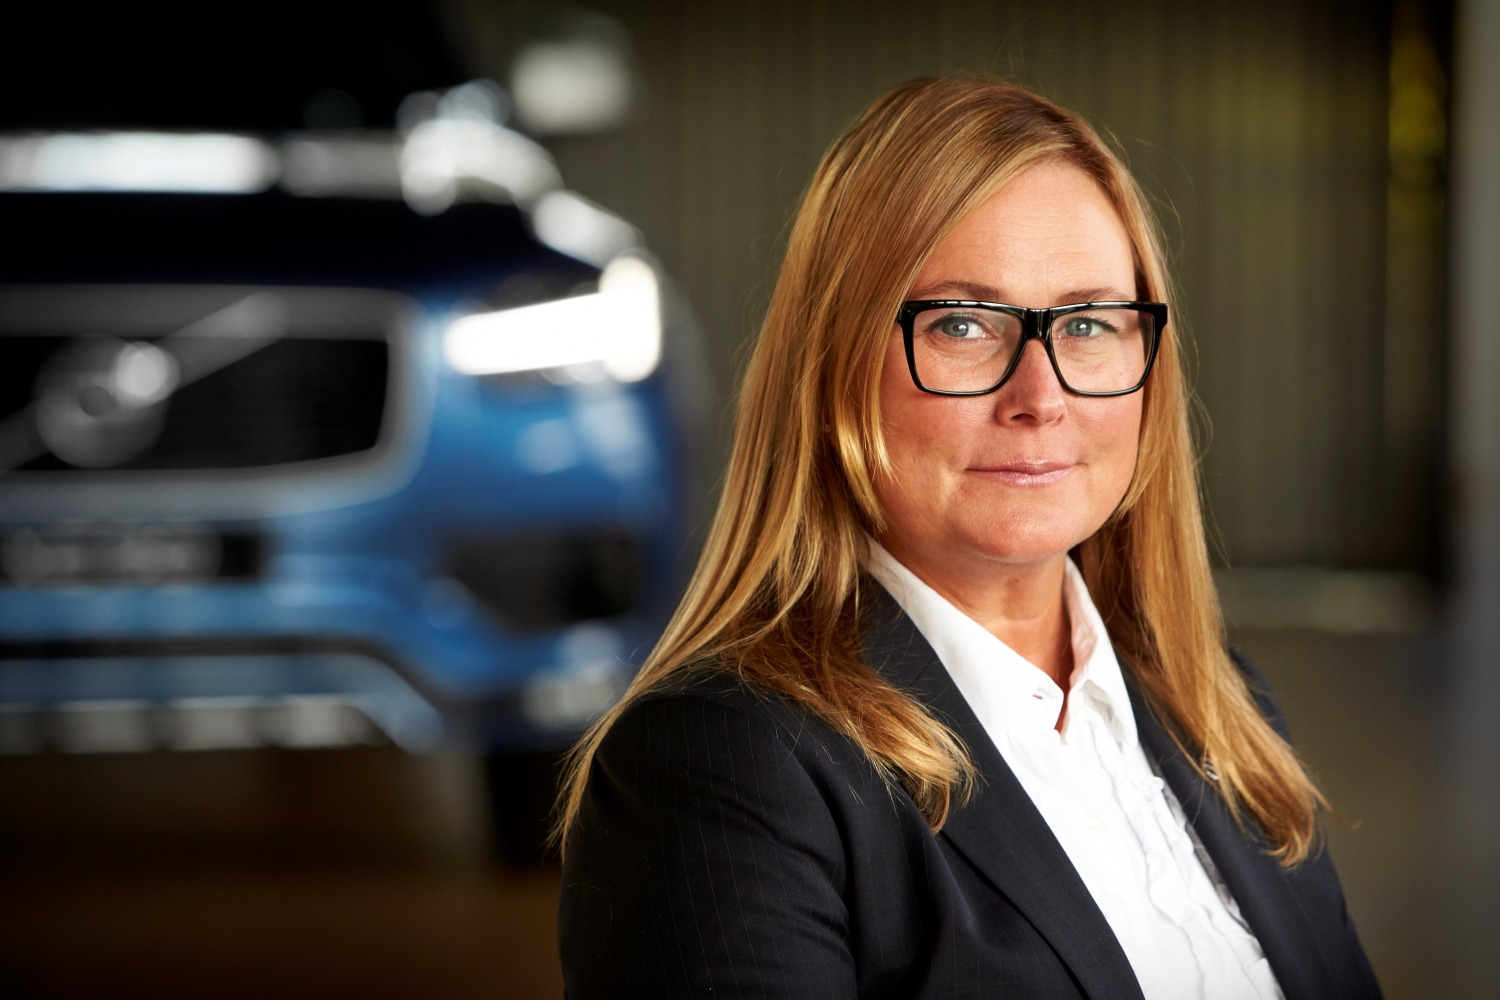 Hanna Fager, Global Head of Corporate Functions